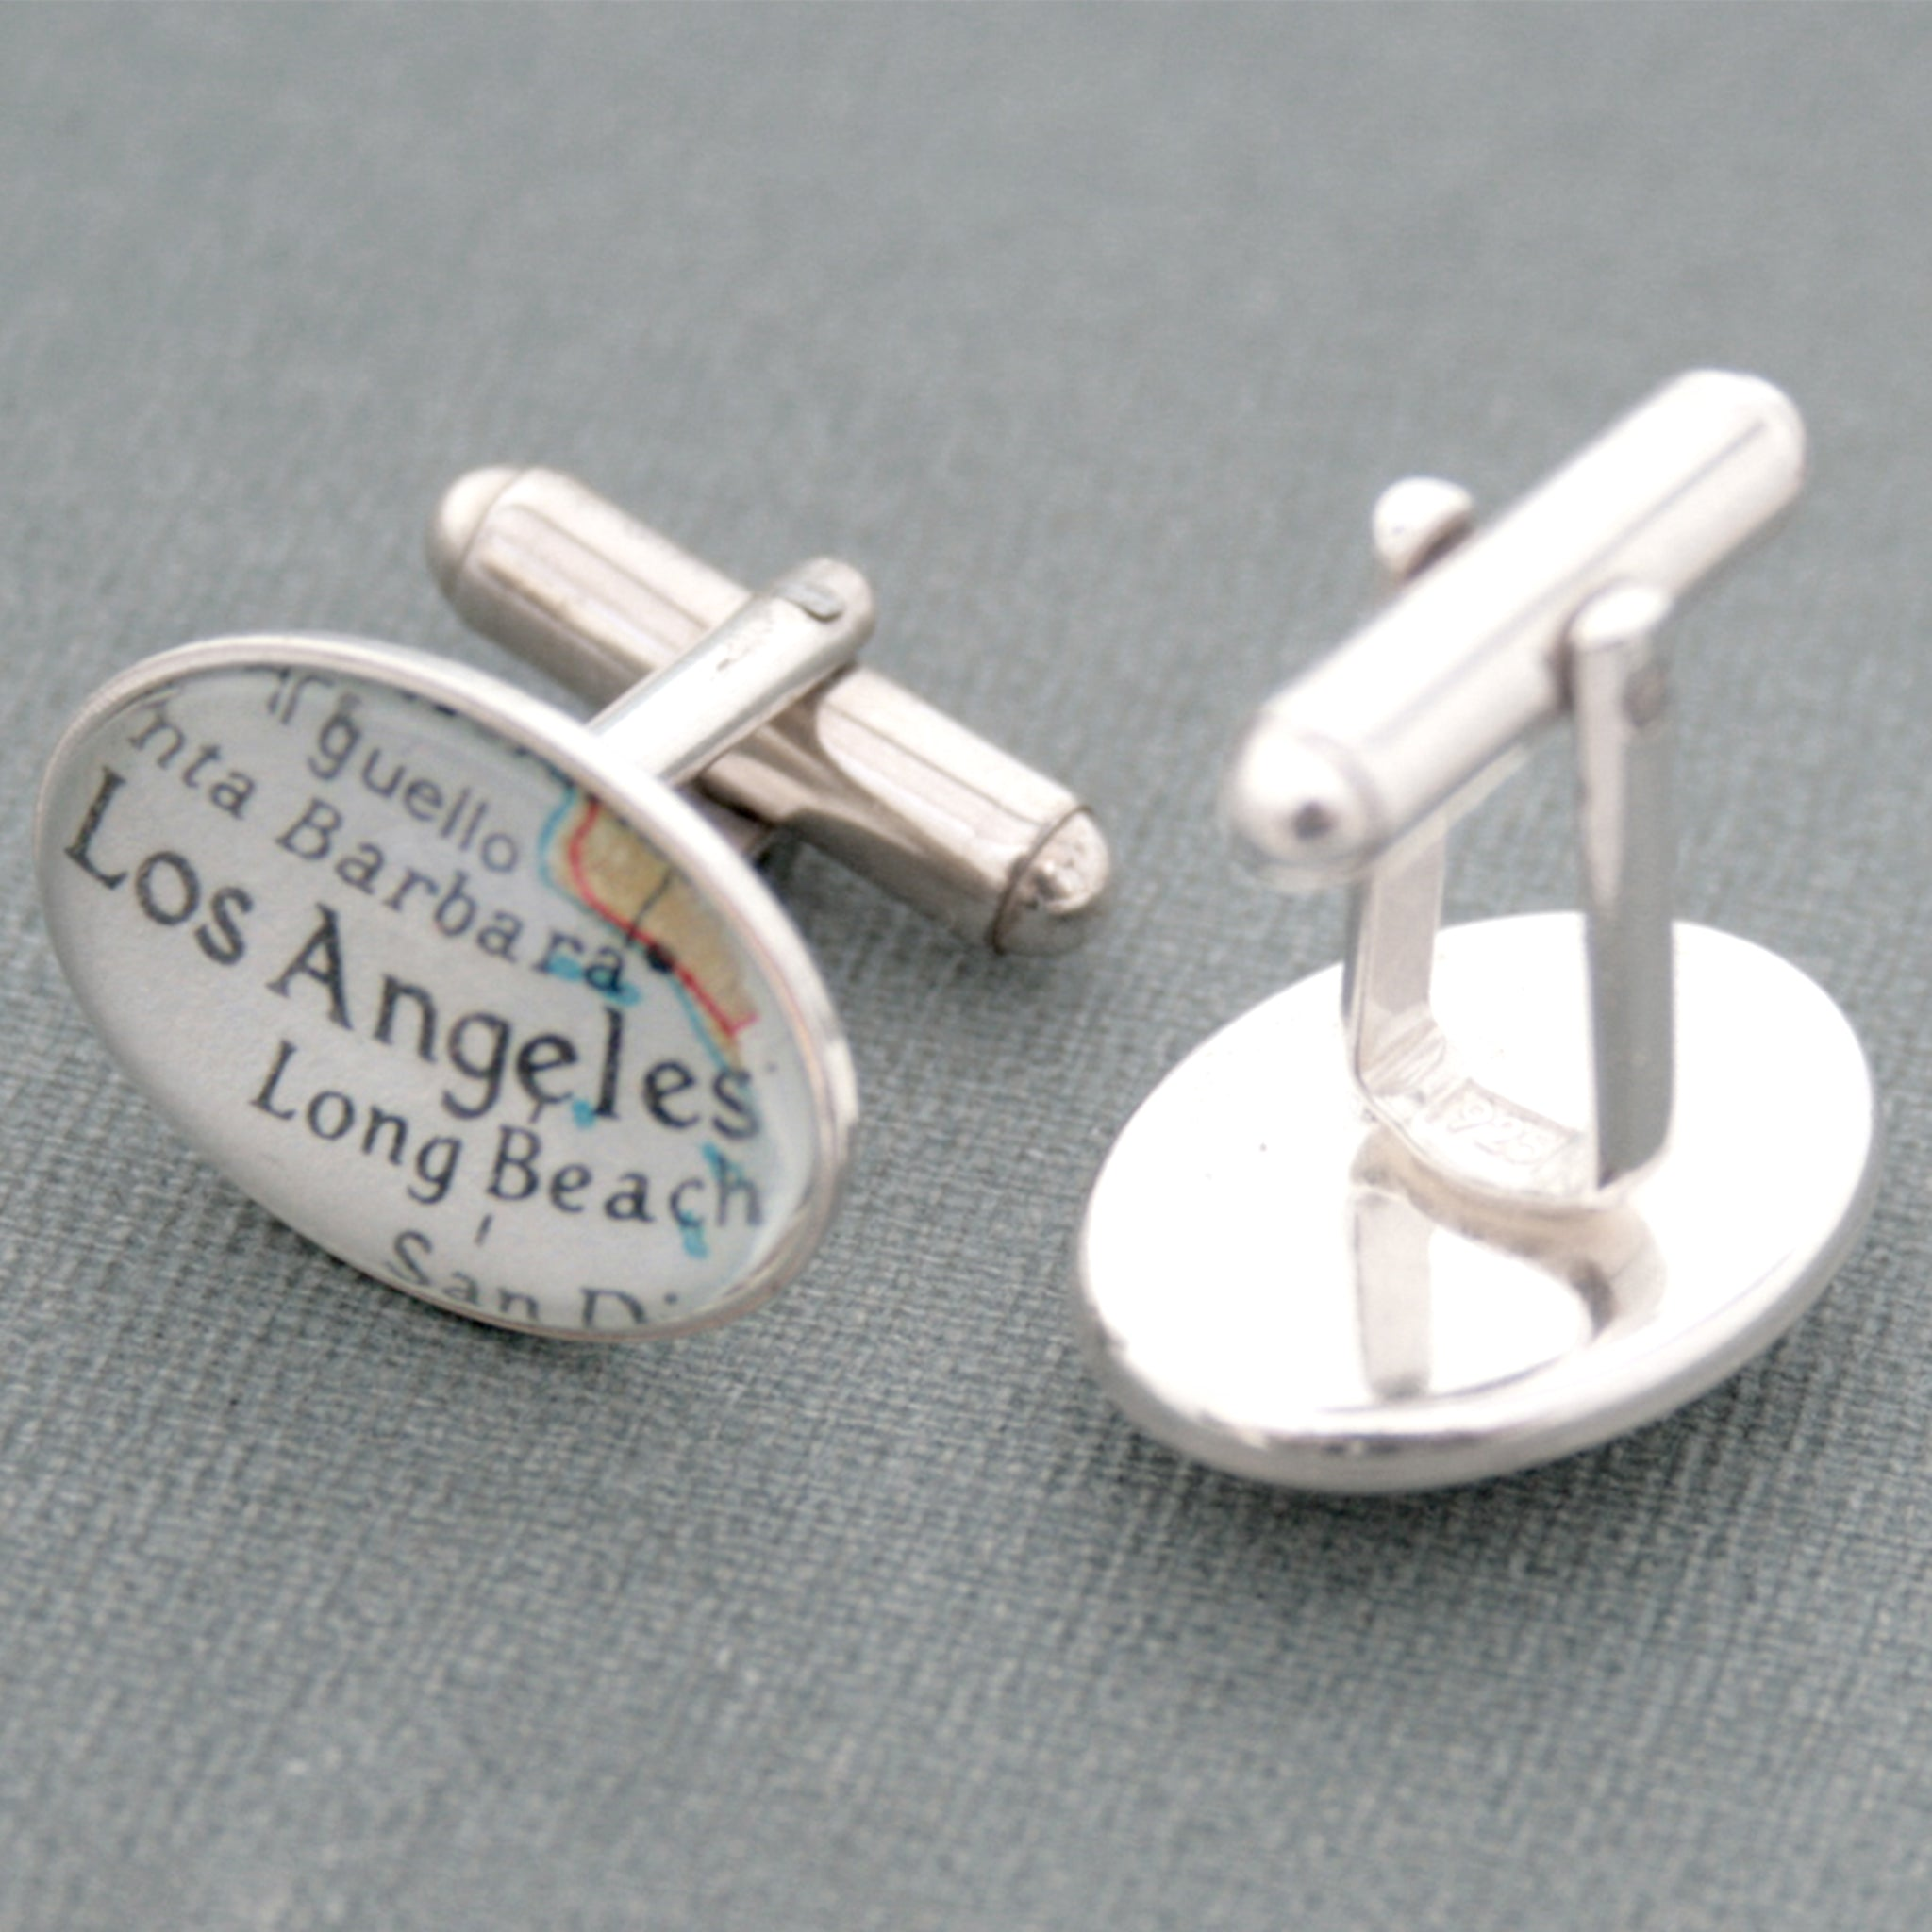 Sterling silver Personalised map cufflinks featuring maps of Los Angeles and San Francisco